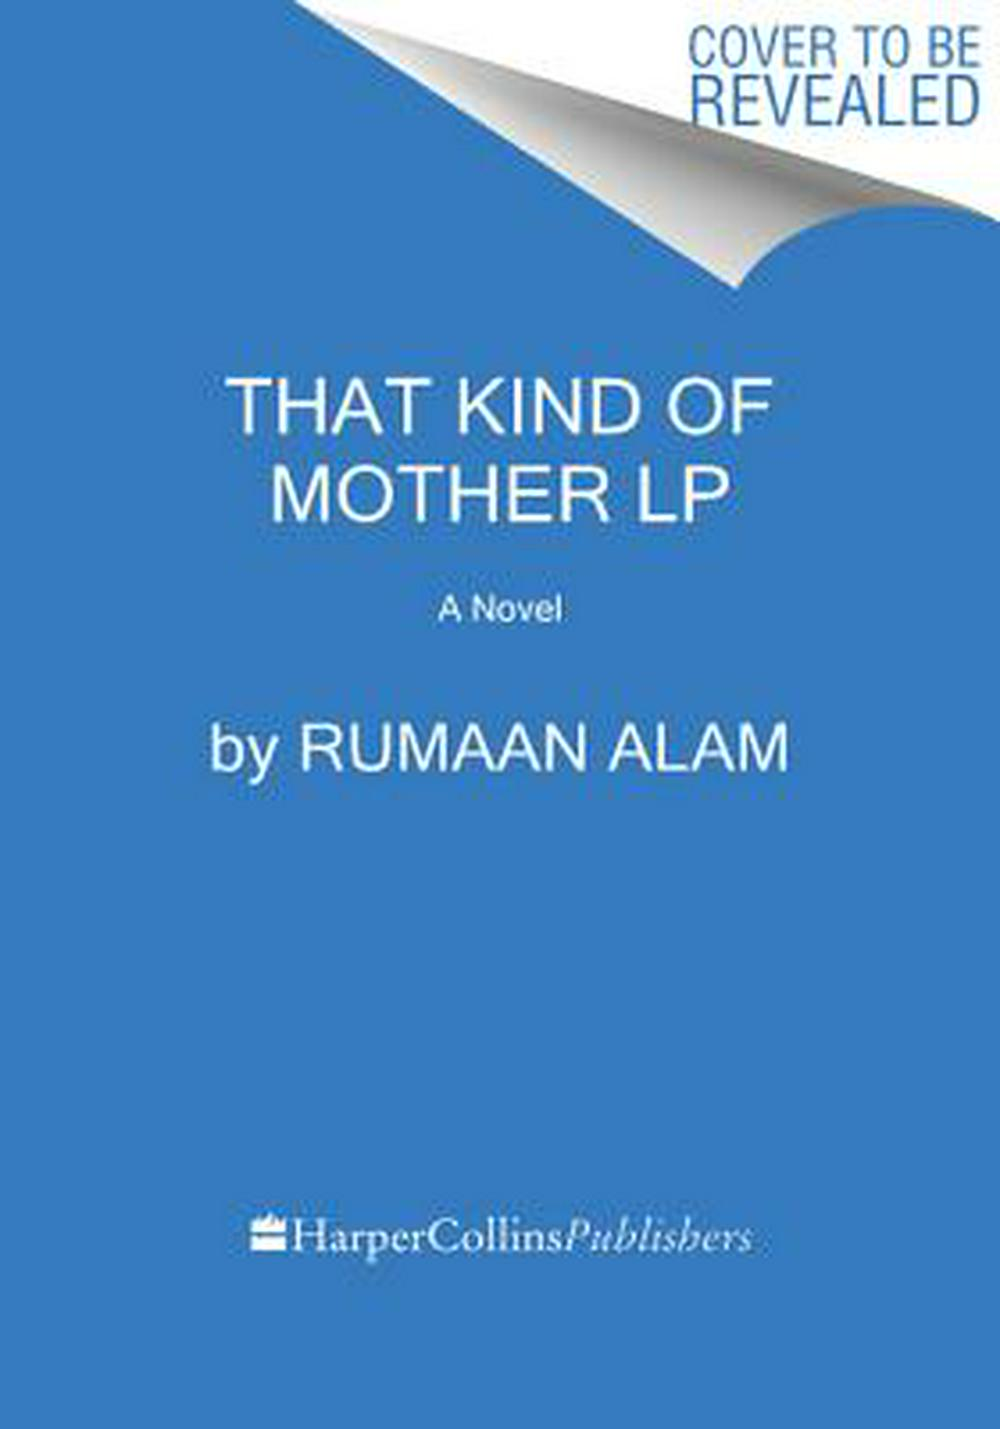 That Kind of Mother by Rumaan Alam, ISBN: 9780062864383